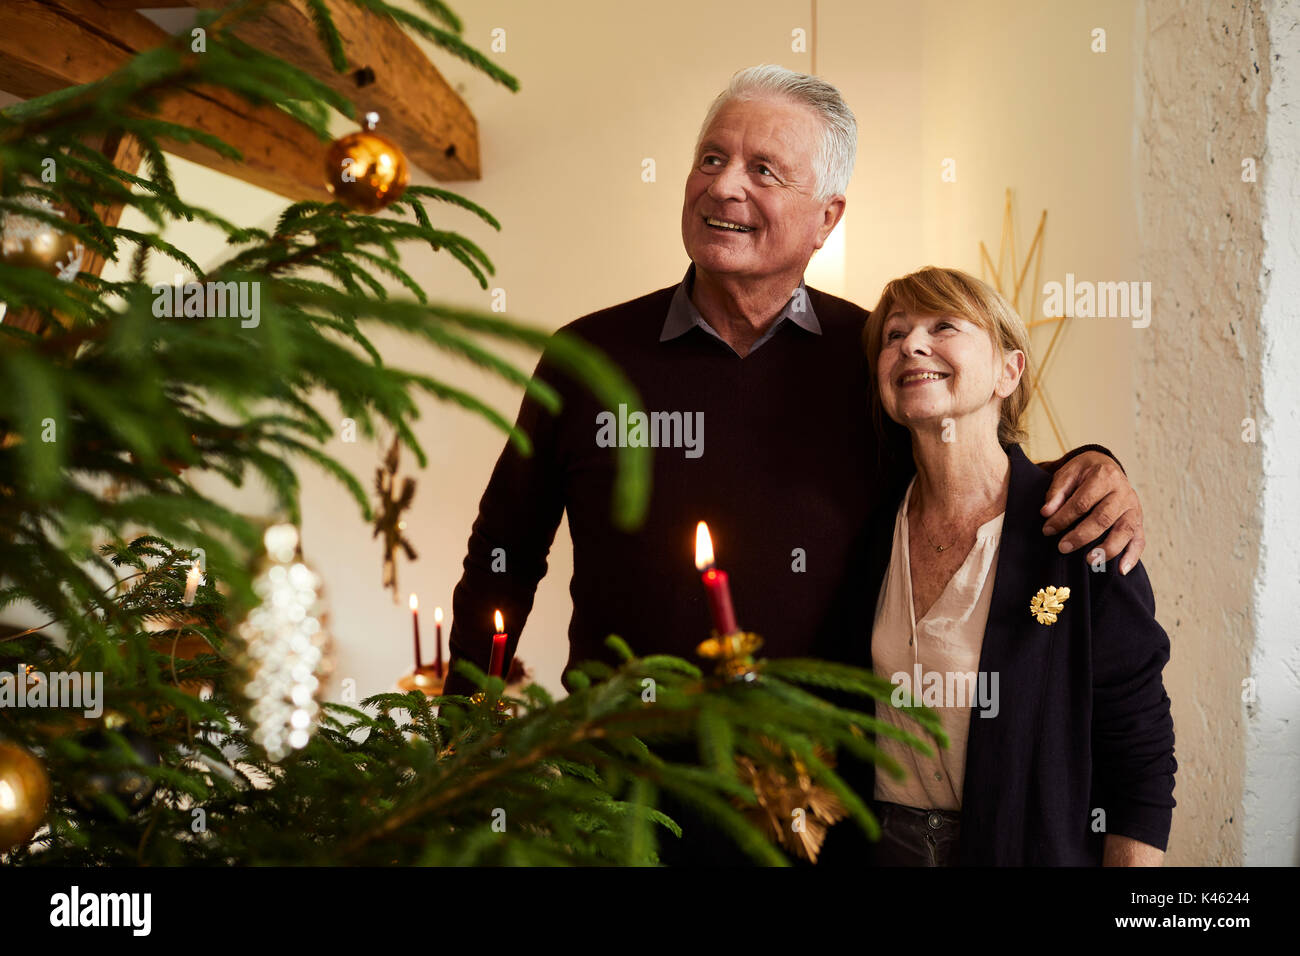 Senior couple in front of Christmas tree, half portrait Stock Photo